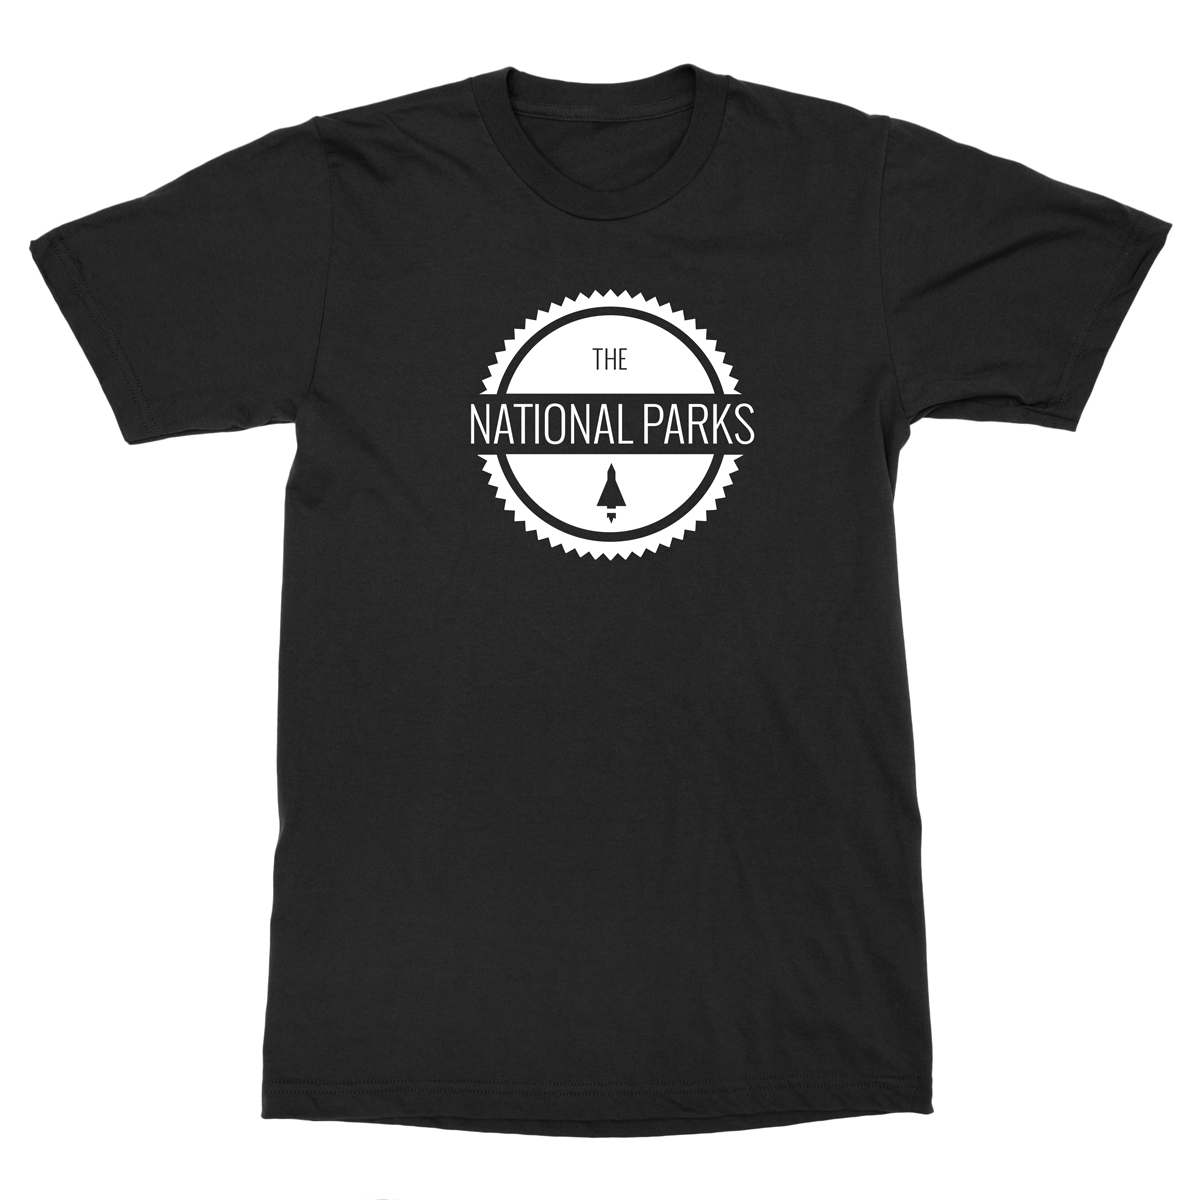 Spaceship Logo Tee - The National Parks